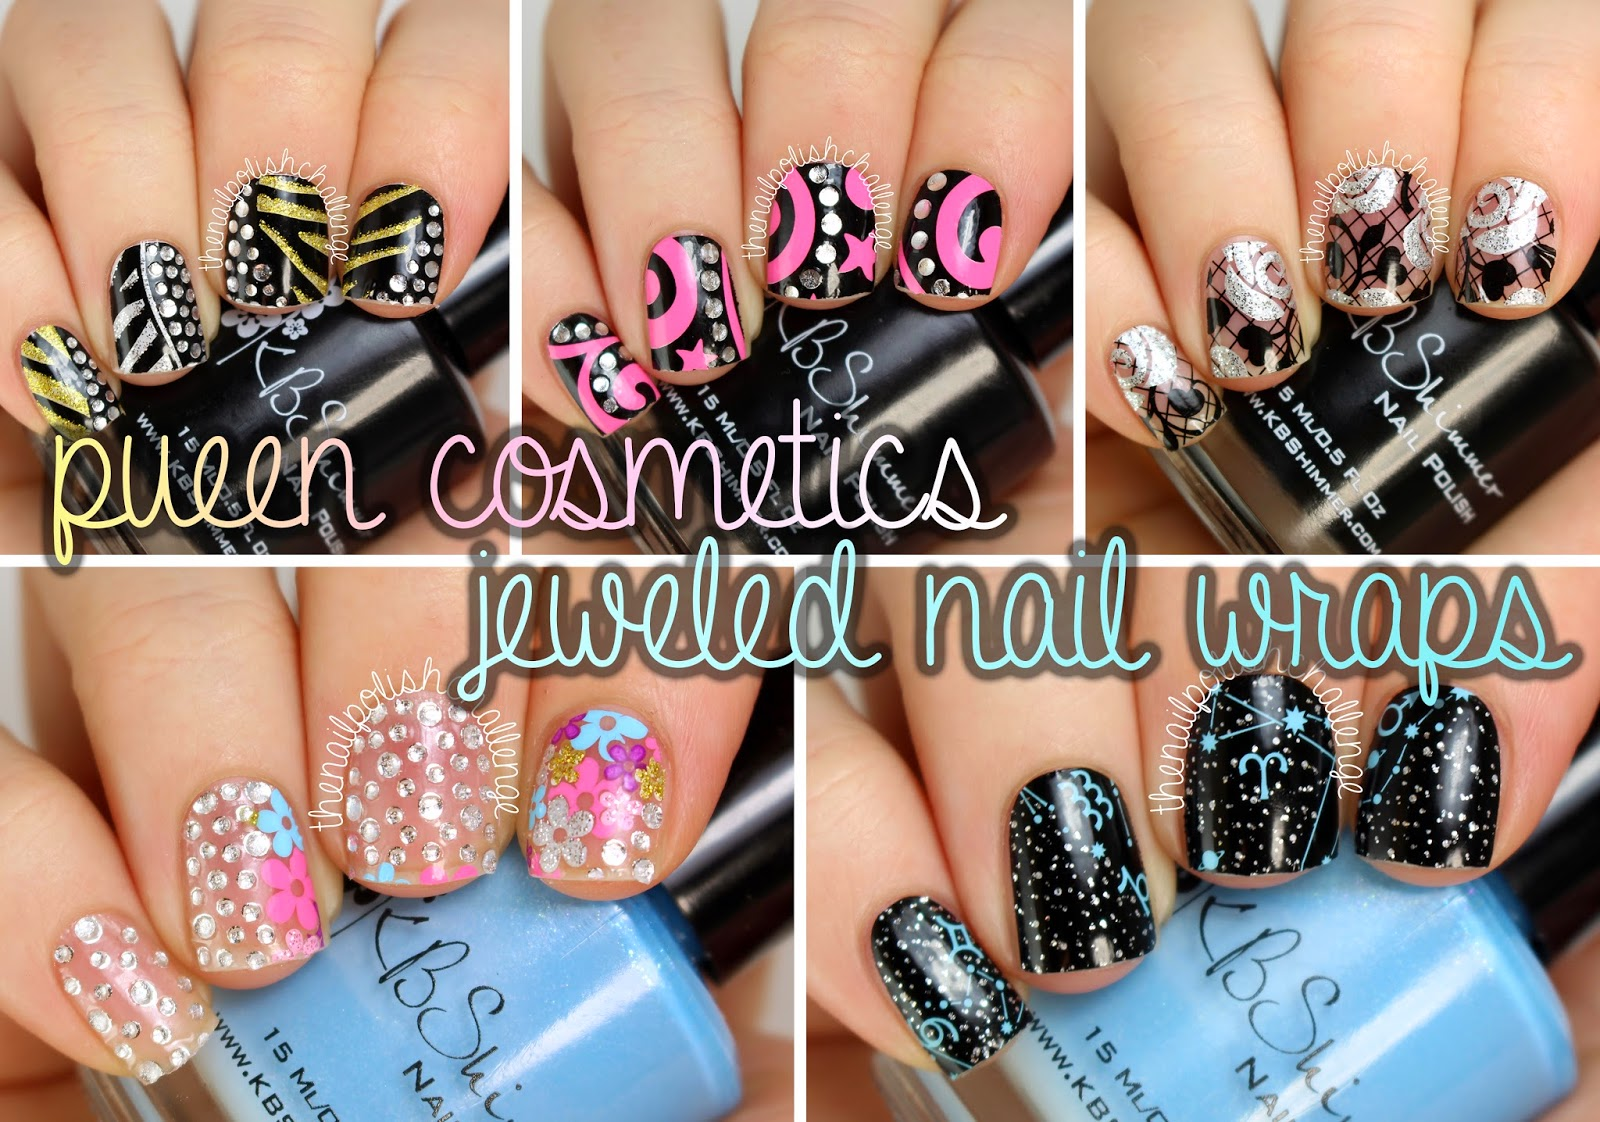 Kelli Marissa: PUEEN Nail Art Wraps: Review